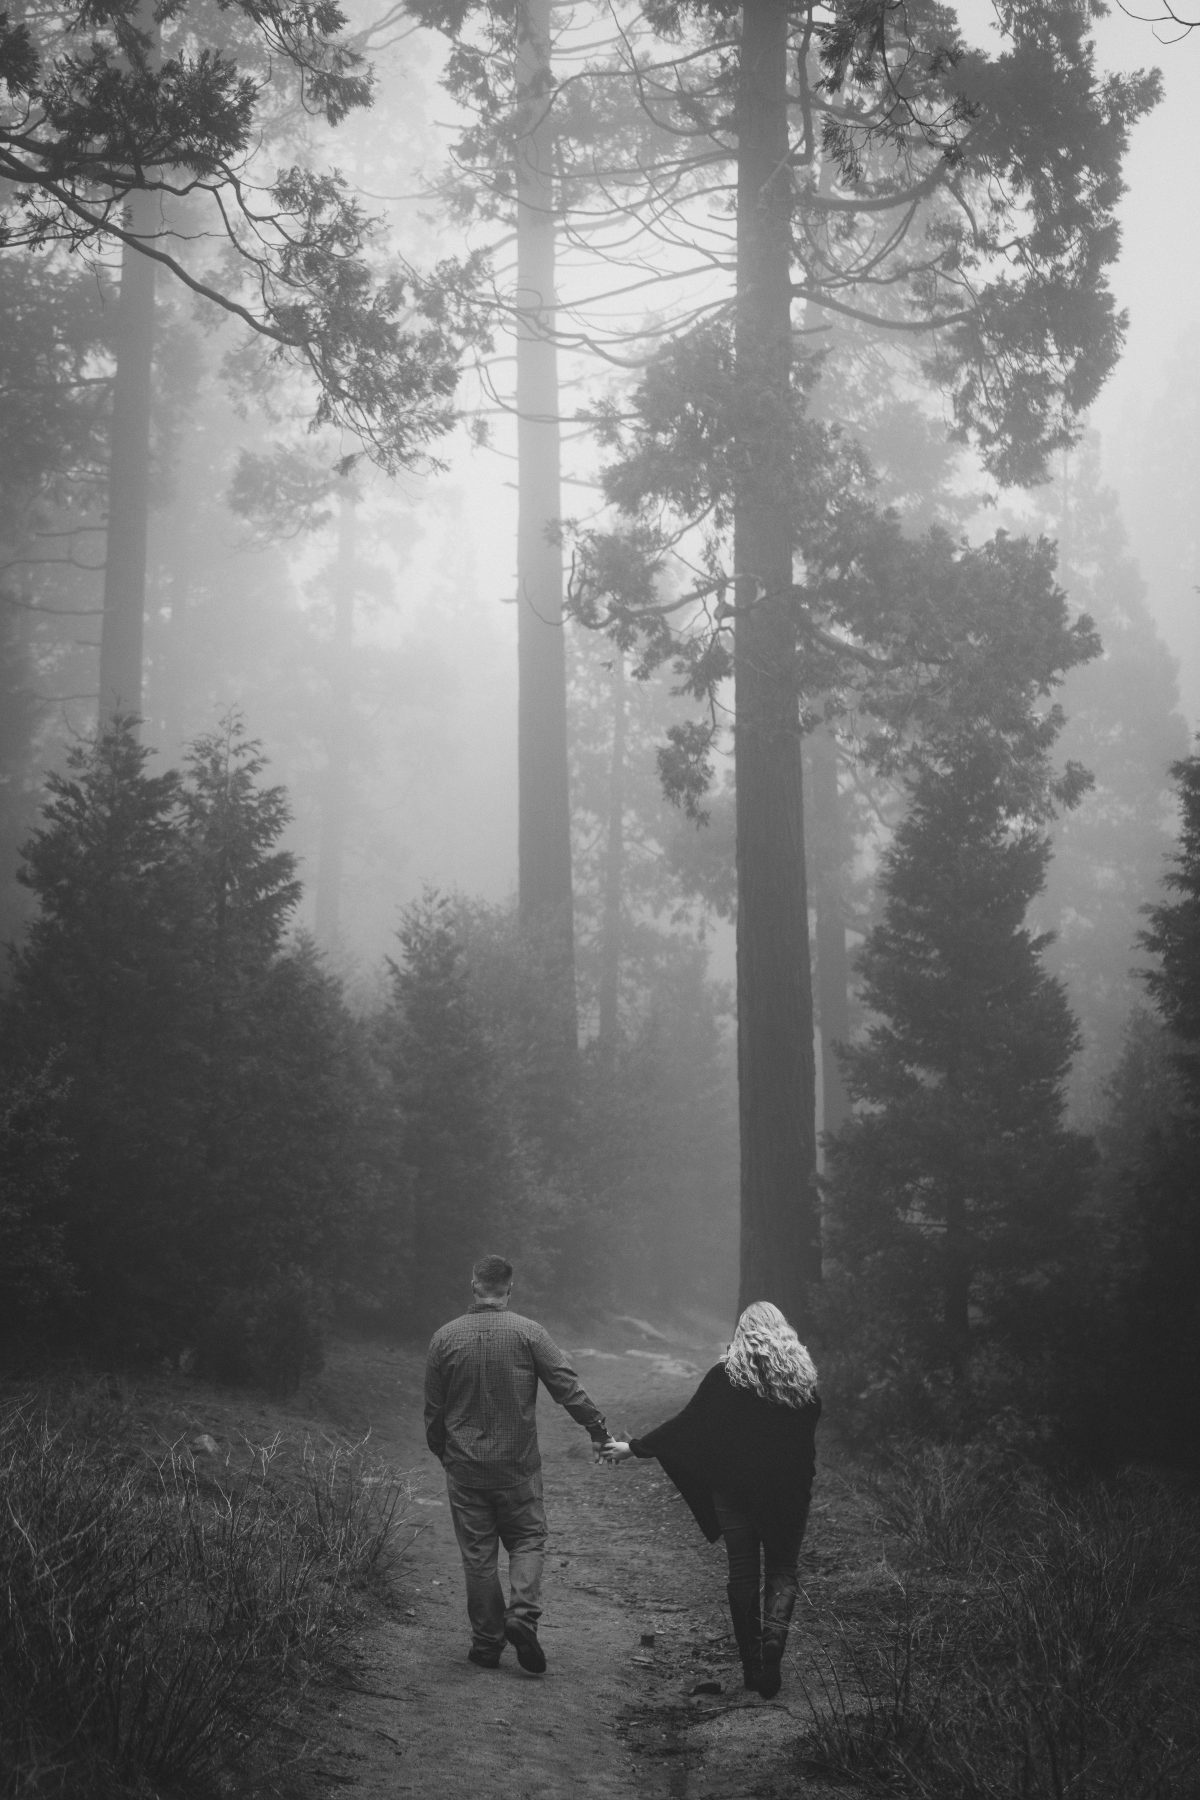 Engaged Couple Walking in the Foggy Forest